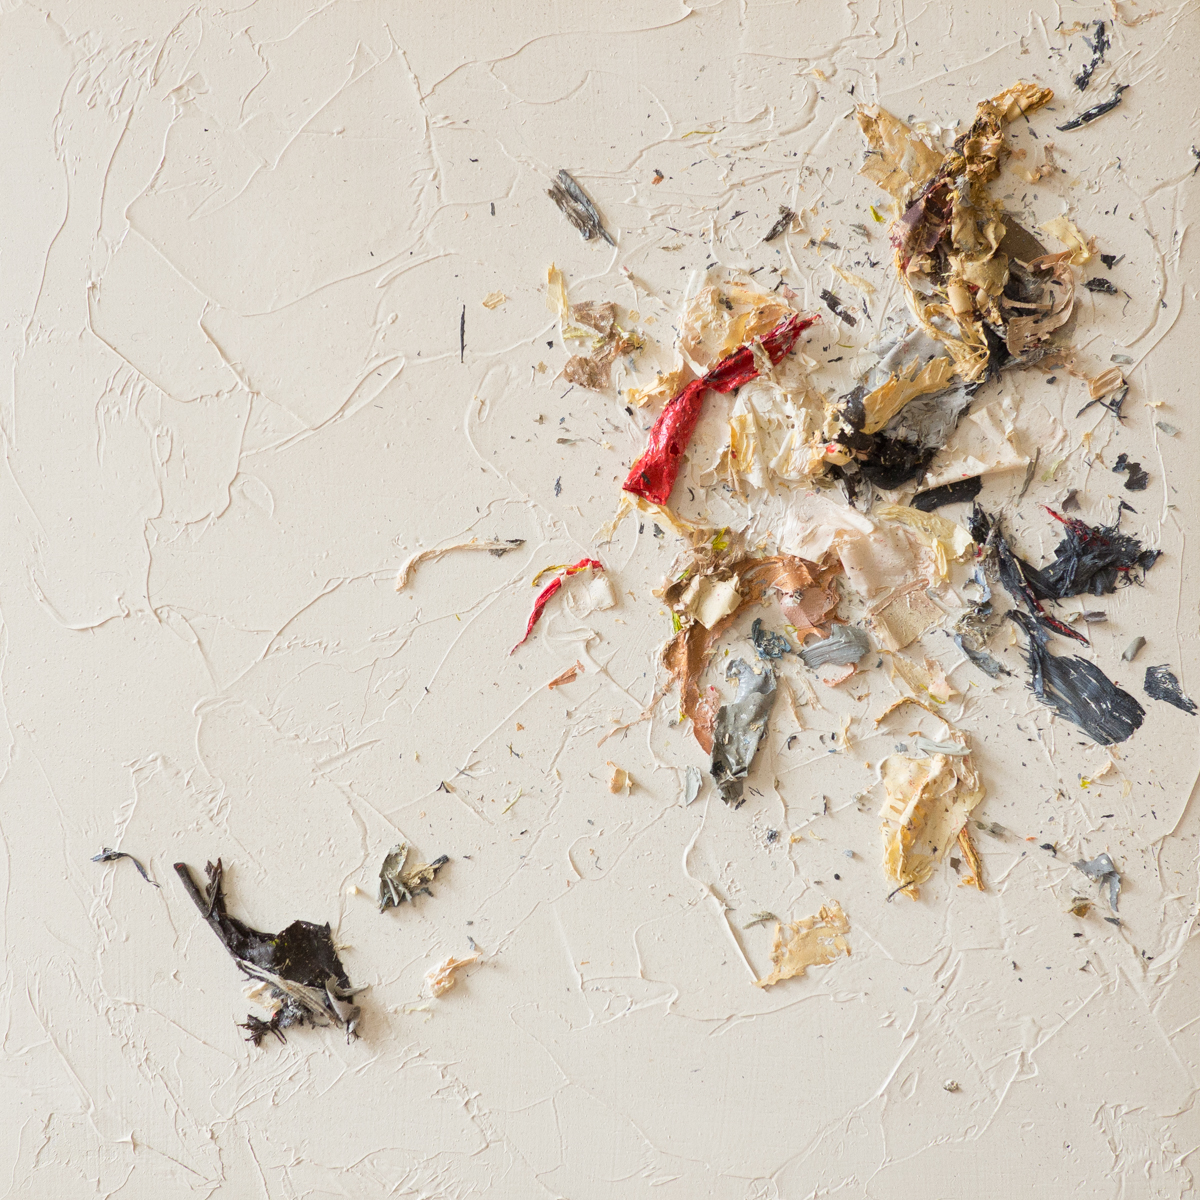 The Complexities of Emotions No.7   oils & oil paint scrapings on wood panel, 6 x 6